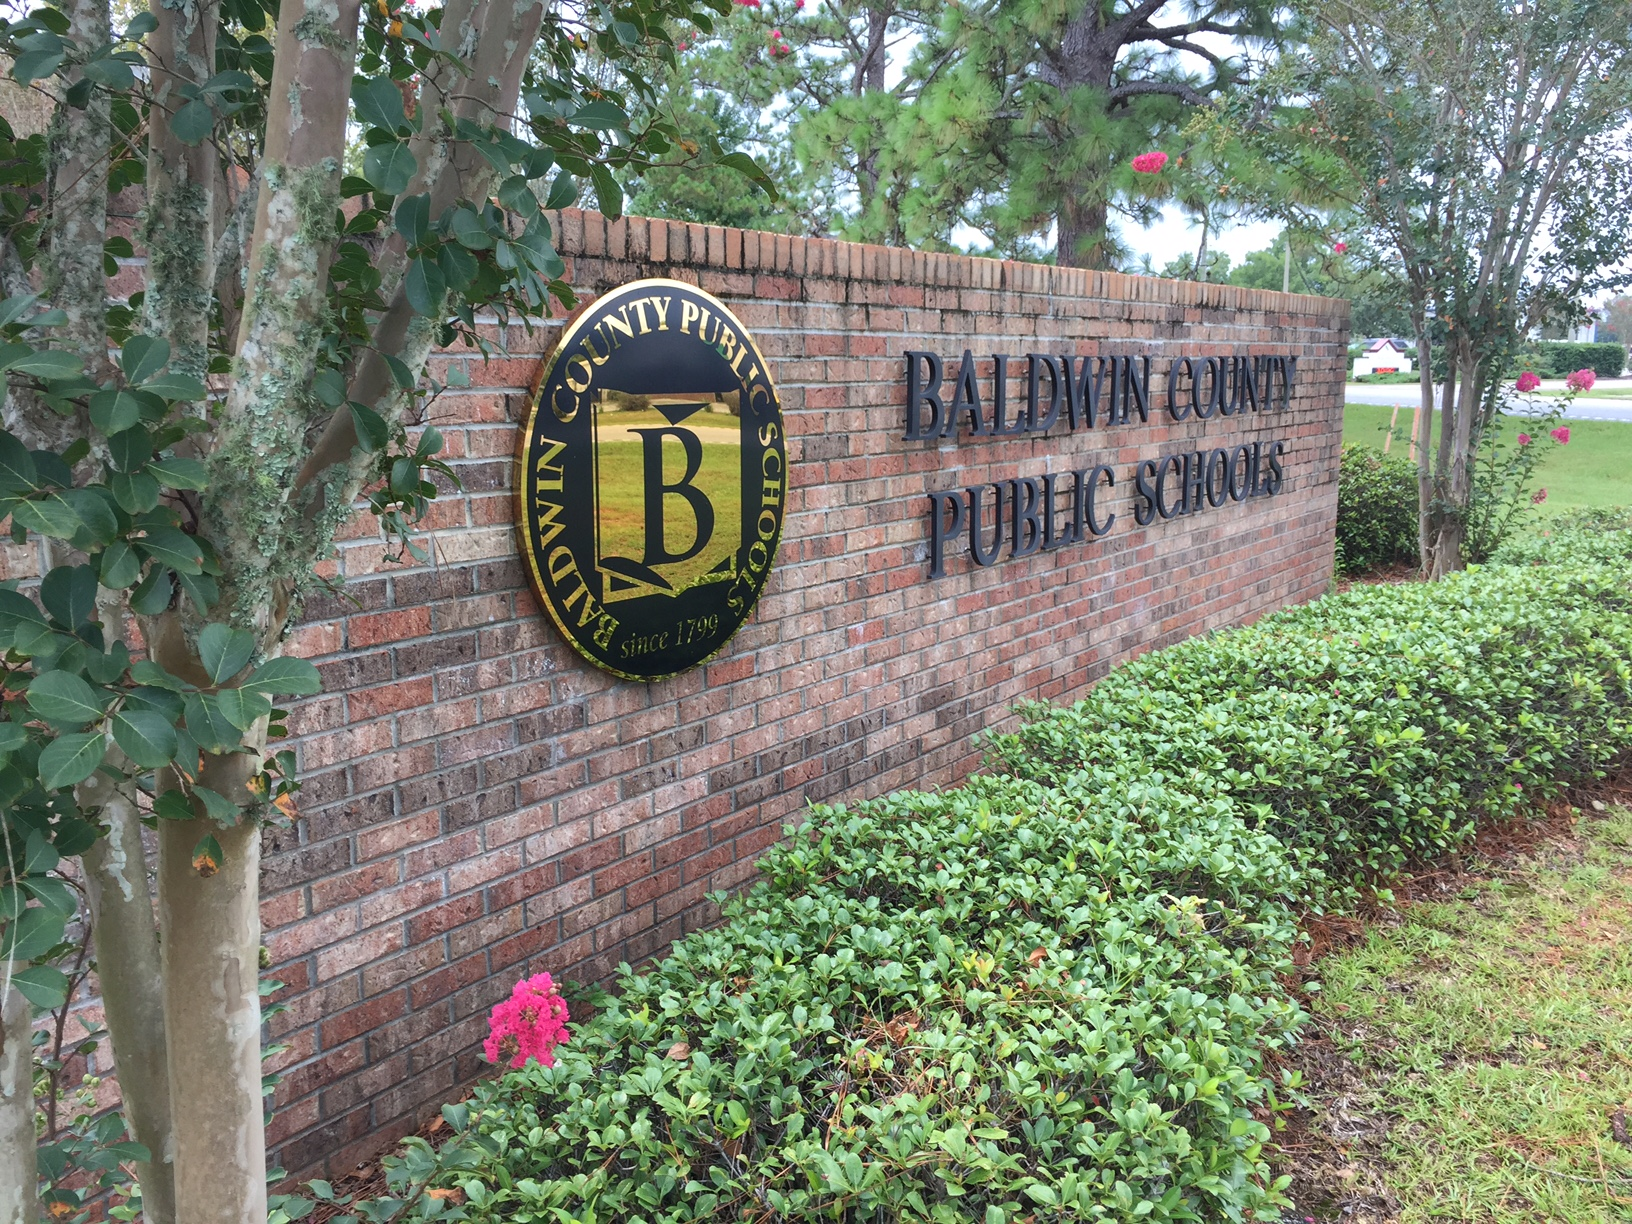 Baldwin County Board of Education_87346